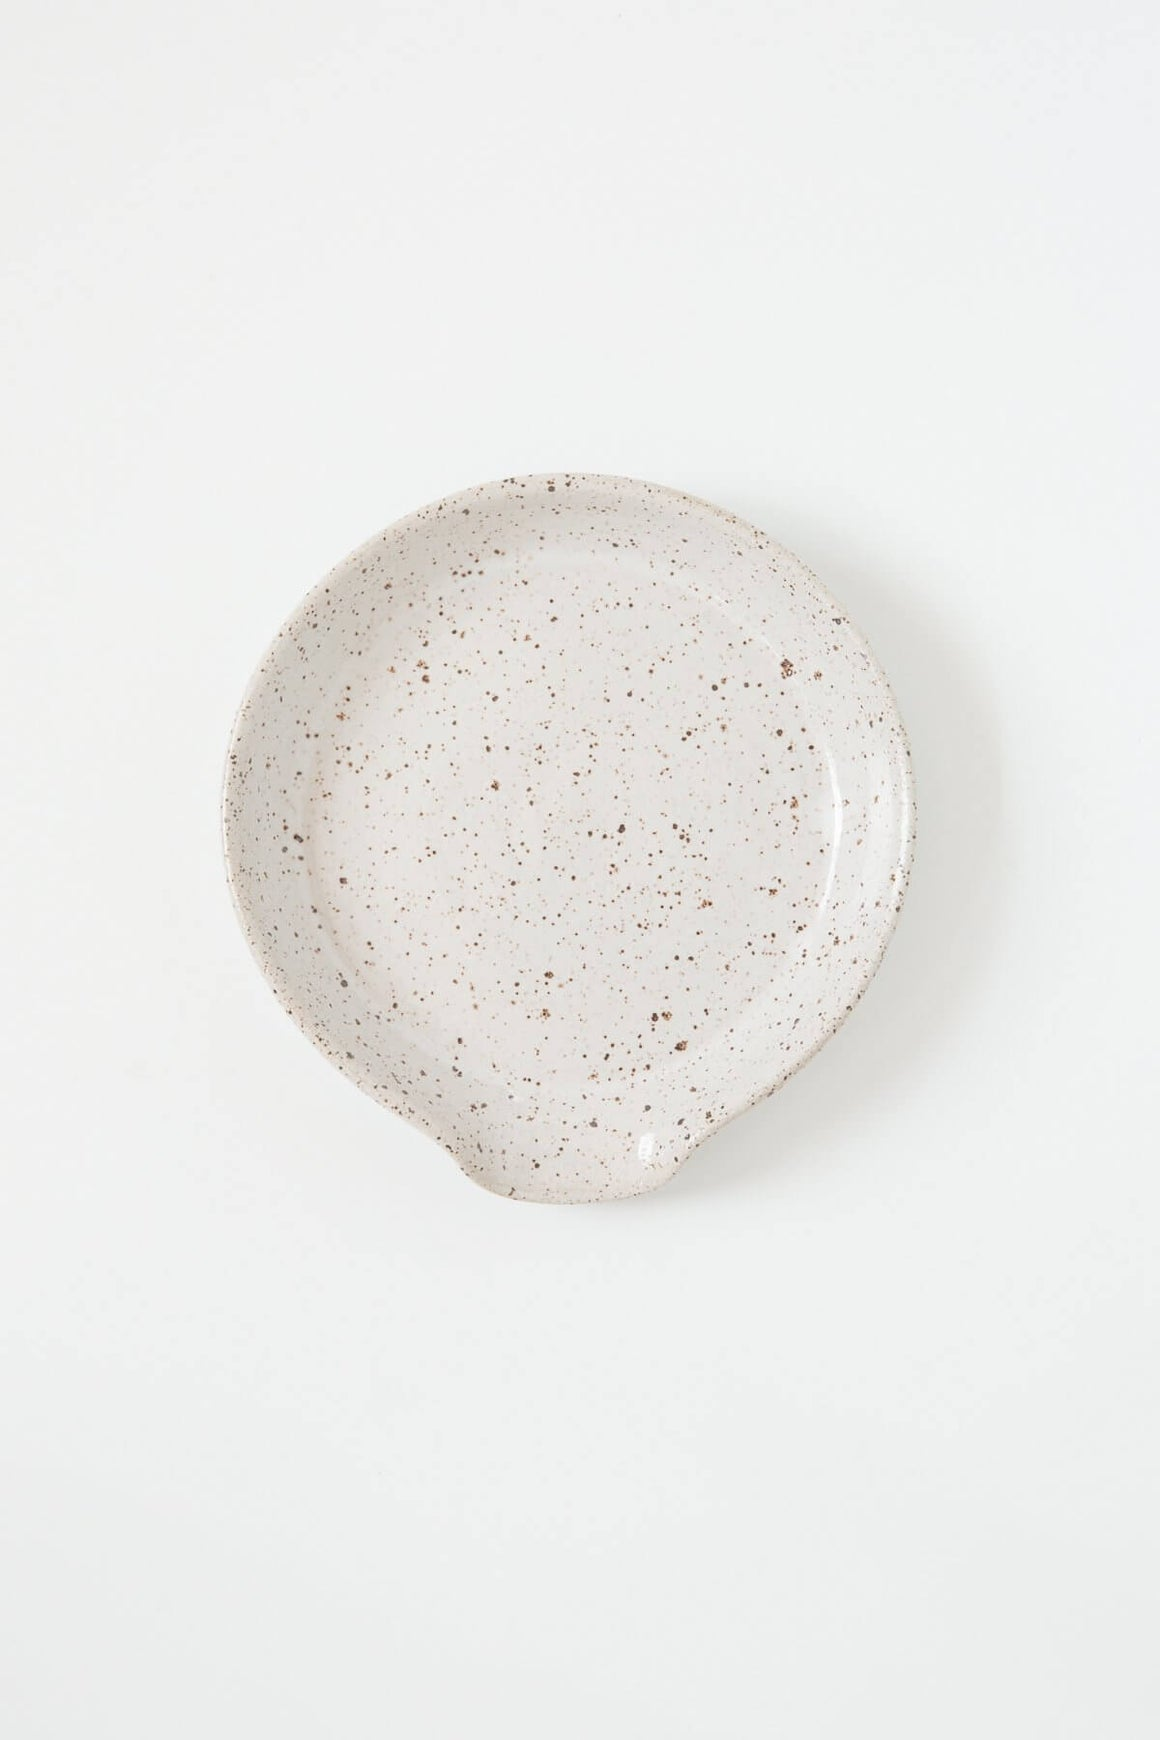 Rachael Pots Speckled Spoon Rest